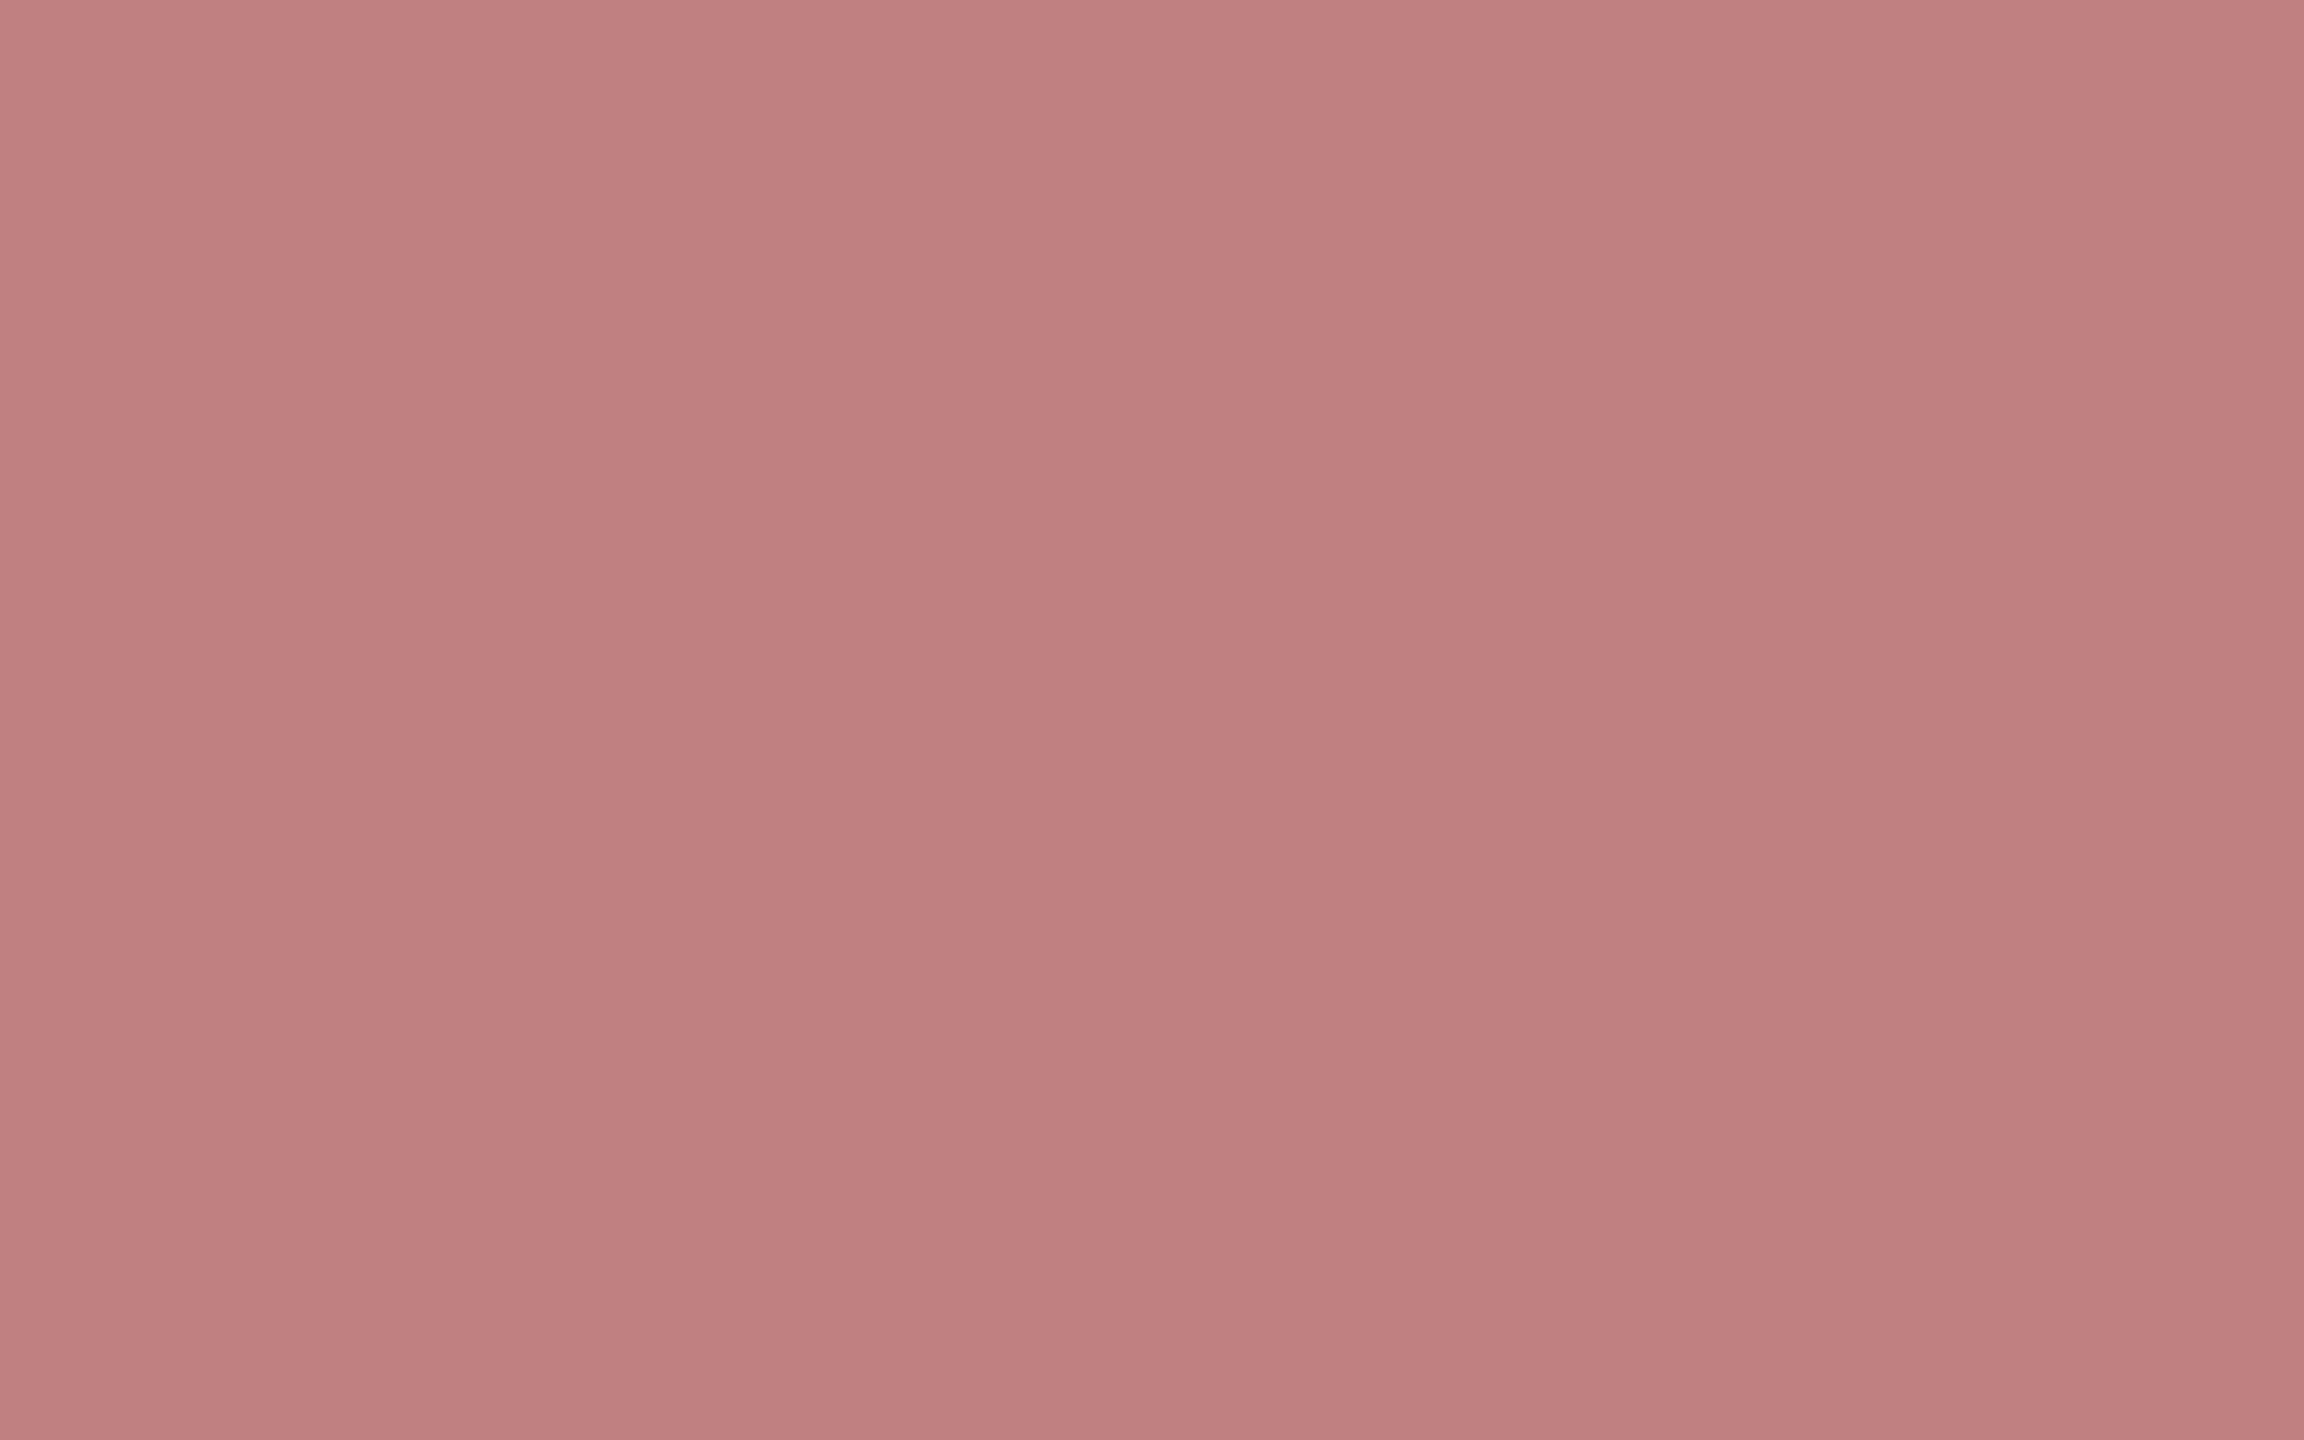 2304x1440 Old Rose Solid Color Background